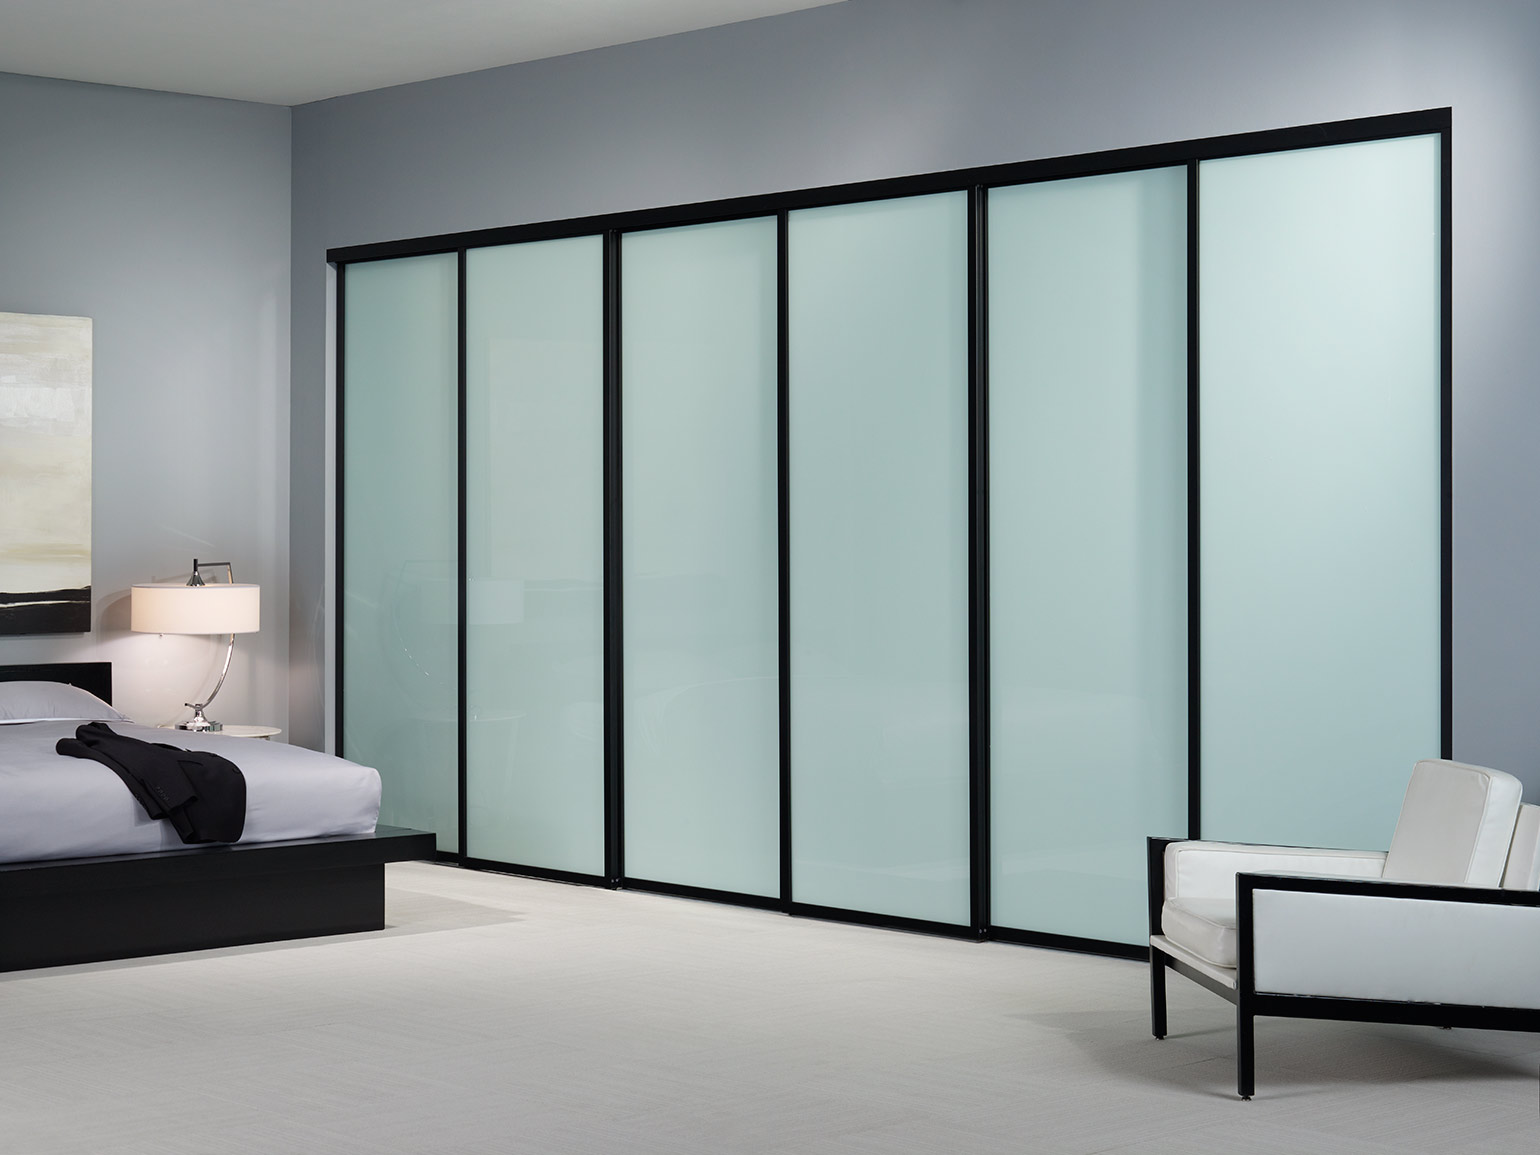 Luxury large sliding glass closet doors qewhqdx